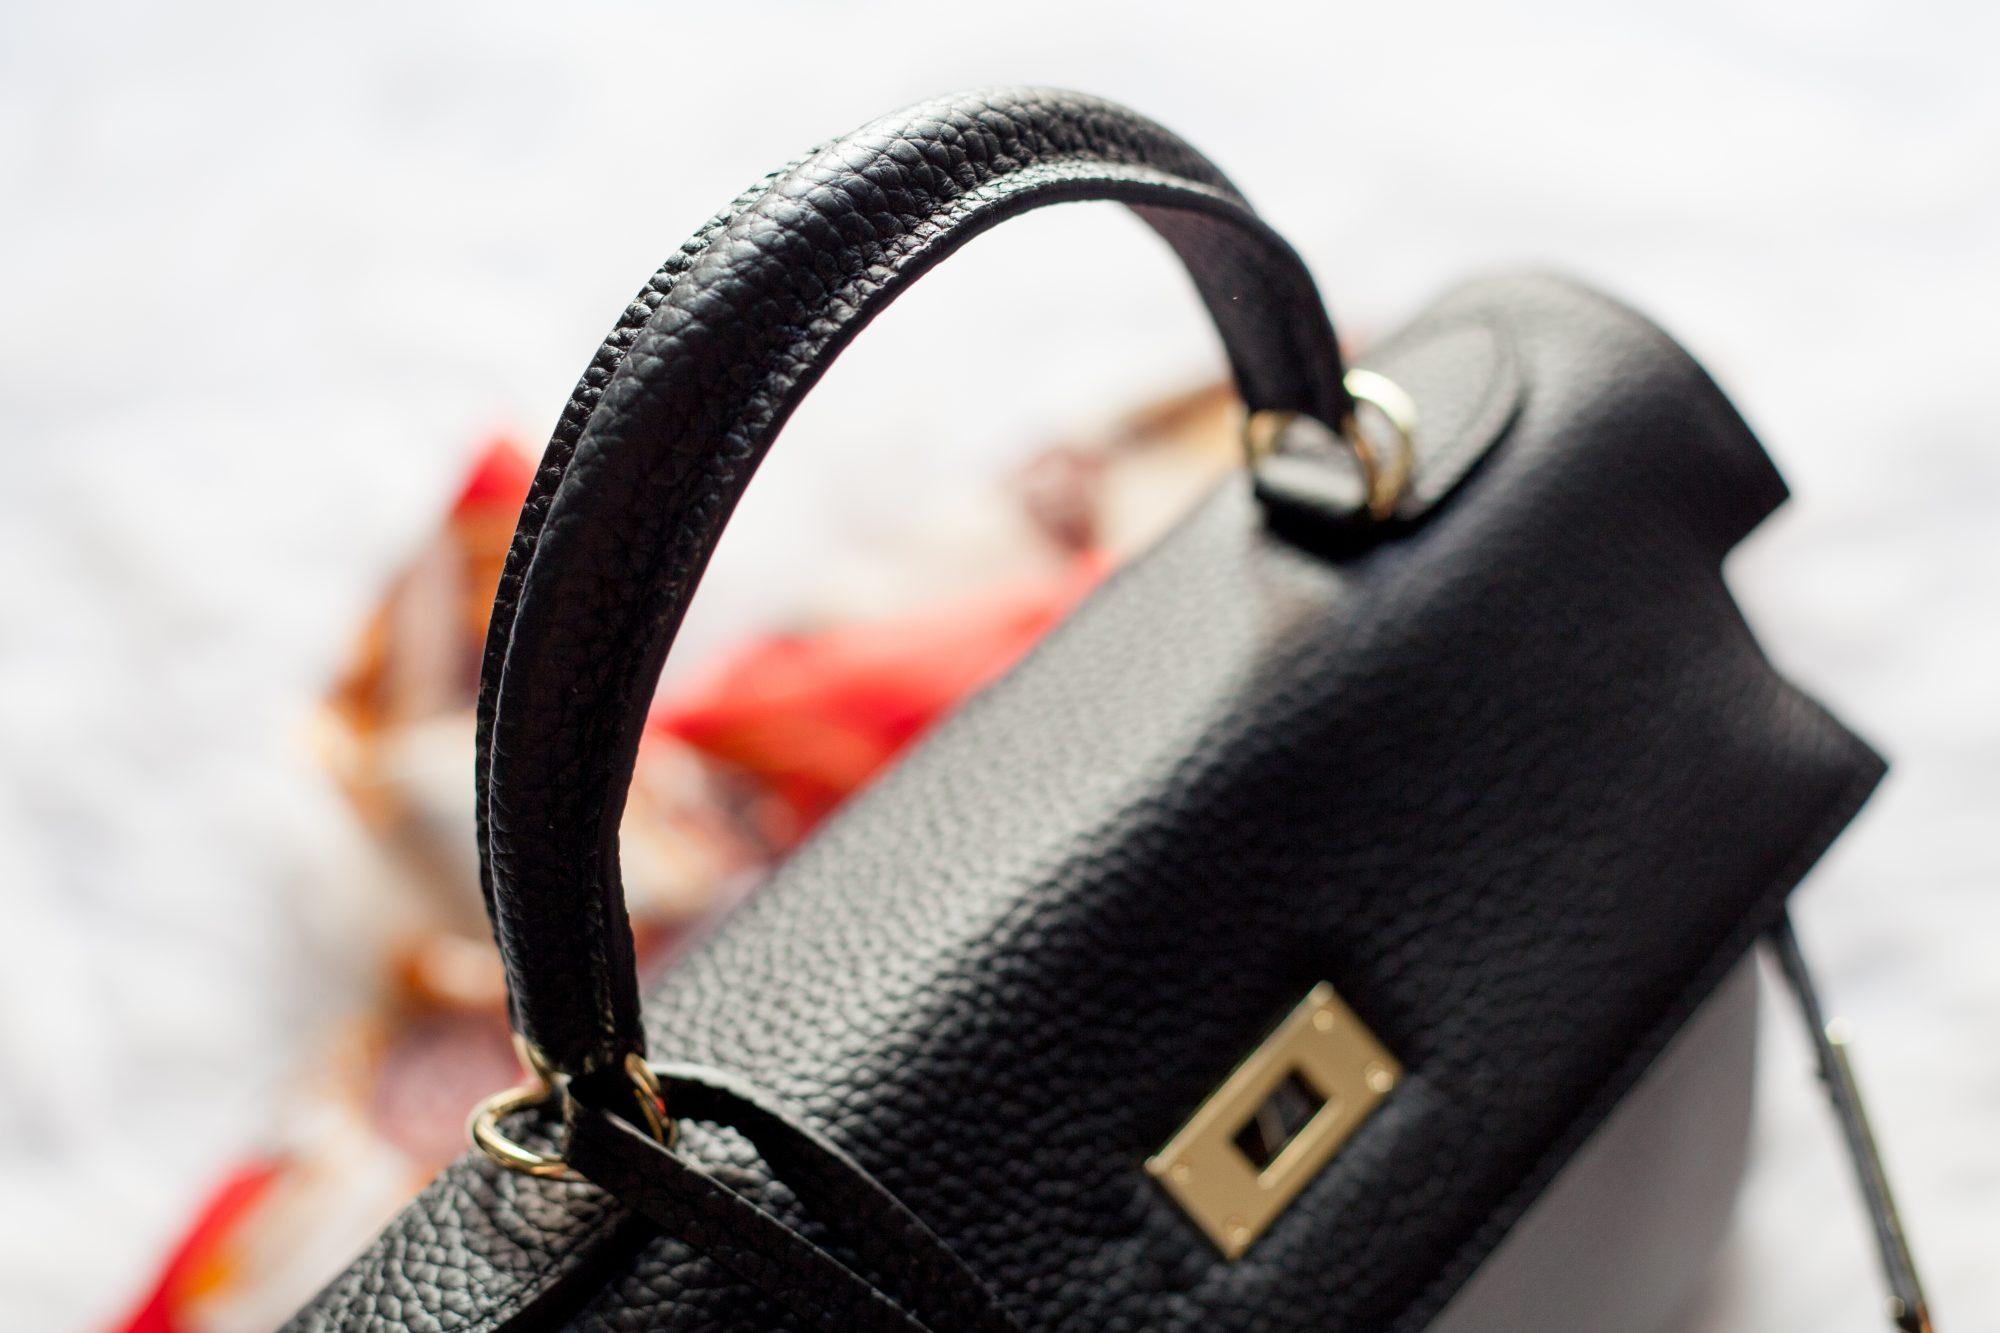 Looking for a dupe of the $8,600+ Hermes Kelly Bag without the expensive price tag? This designer dupe is made from genuine leather and is only $105! Check out the review with lots of detailed photos. - www.theballeronabudget